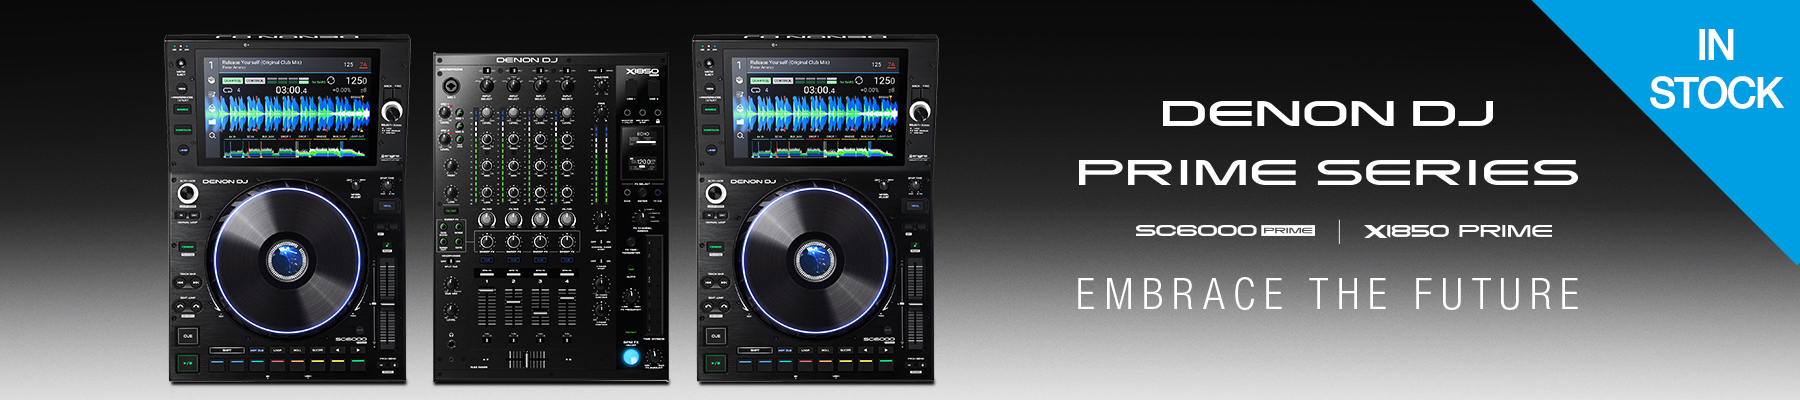 Denon DJ SC6000 & X1850 PRIME Embrace The Future!